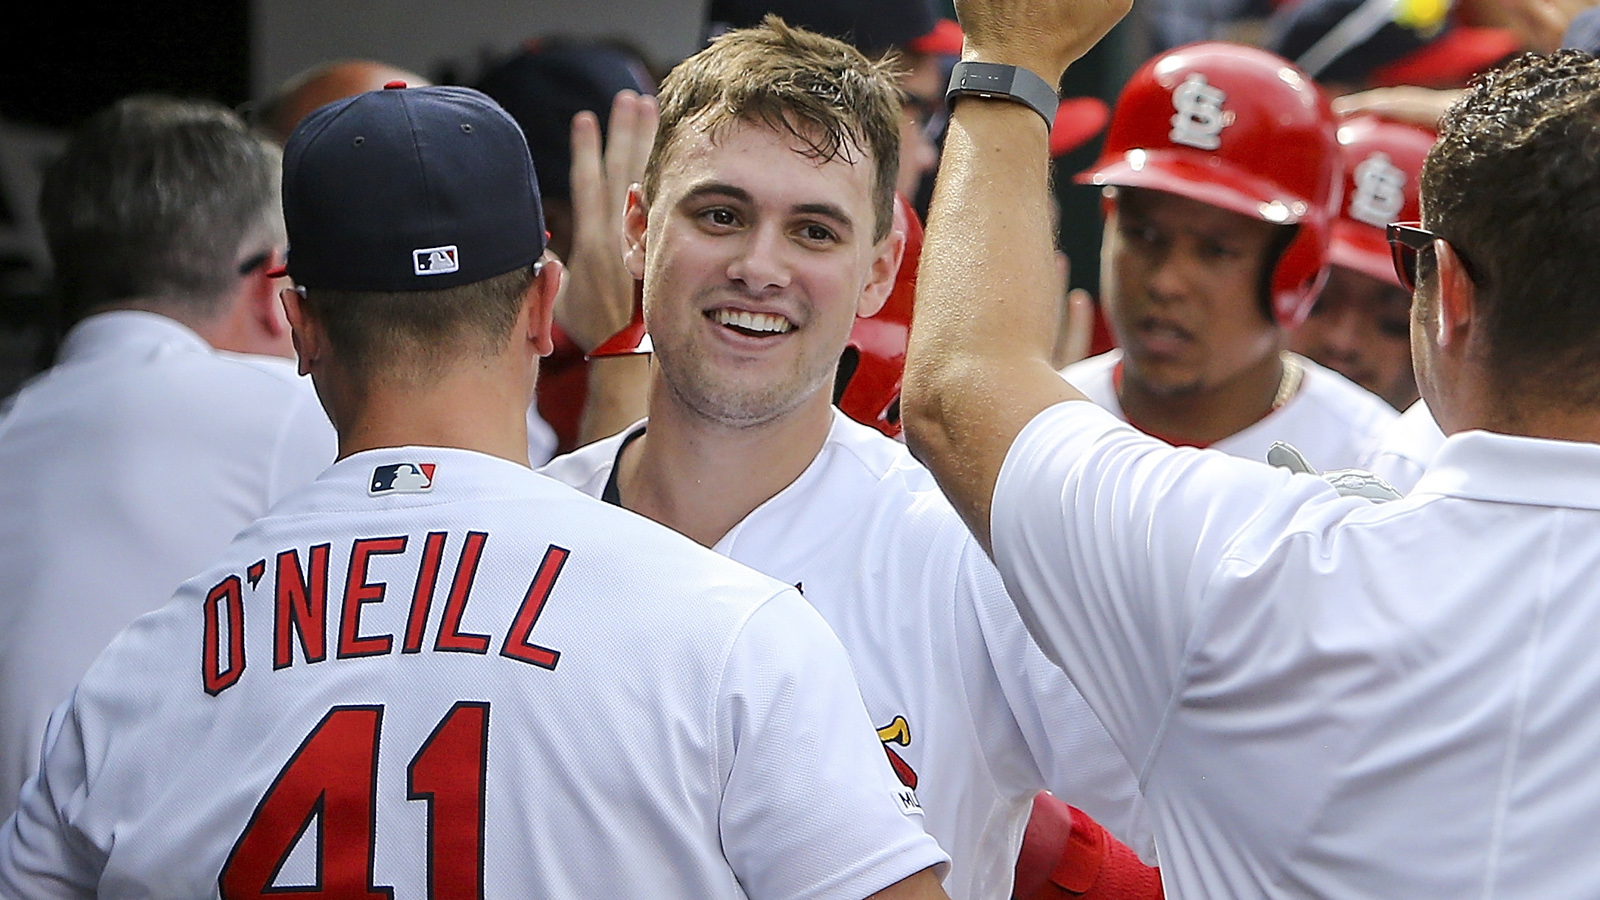 Thomas' huge day propels Cardinals to 11-9 victory over Pirates